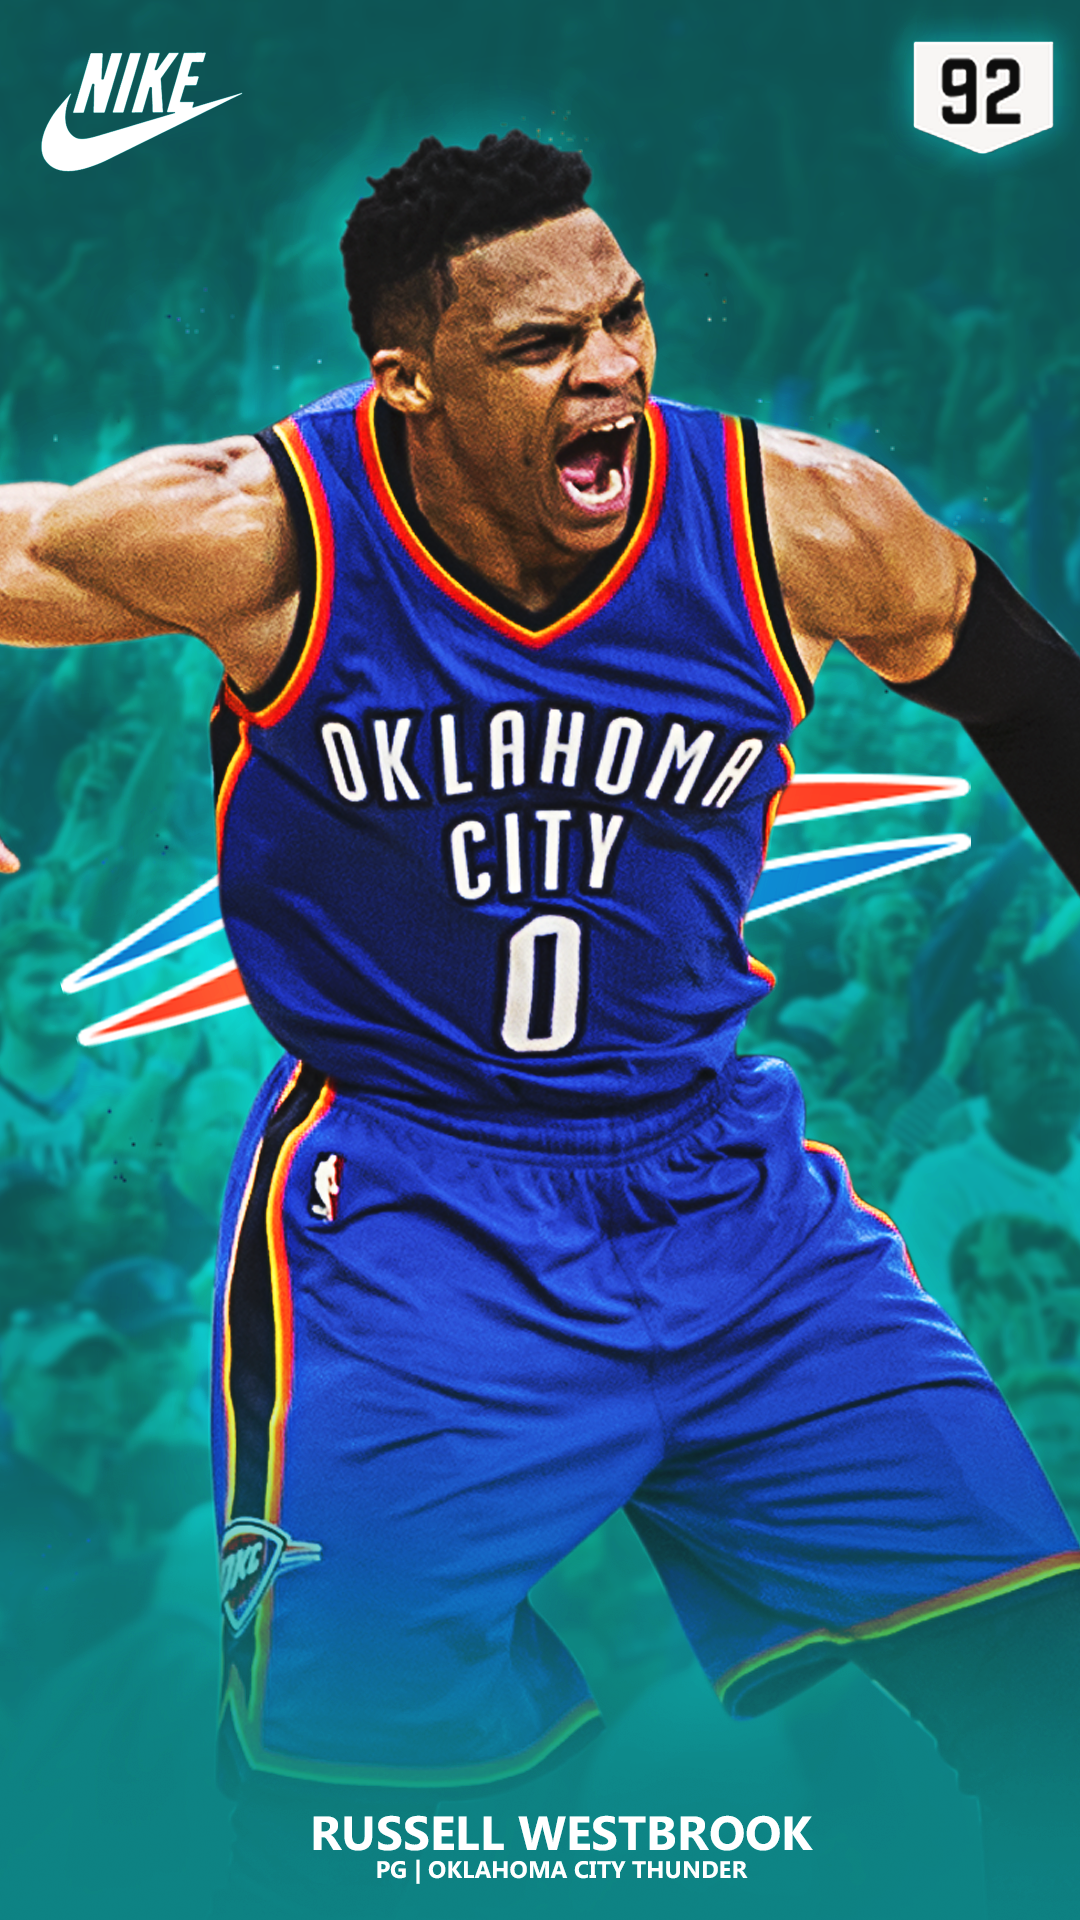 Russell Westbrook Wallpaper Rating Card Westbrook Wallpapers Russell Westbrook Wallpaper Westbrook